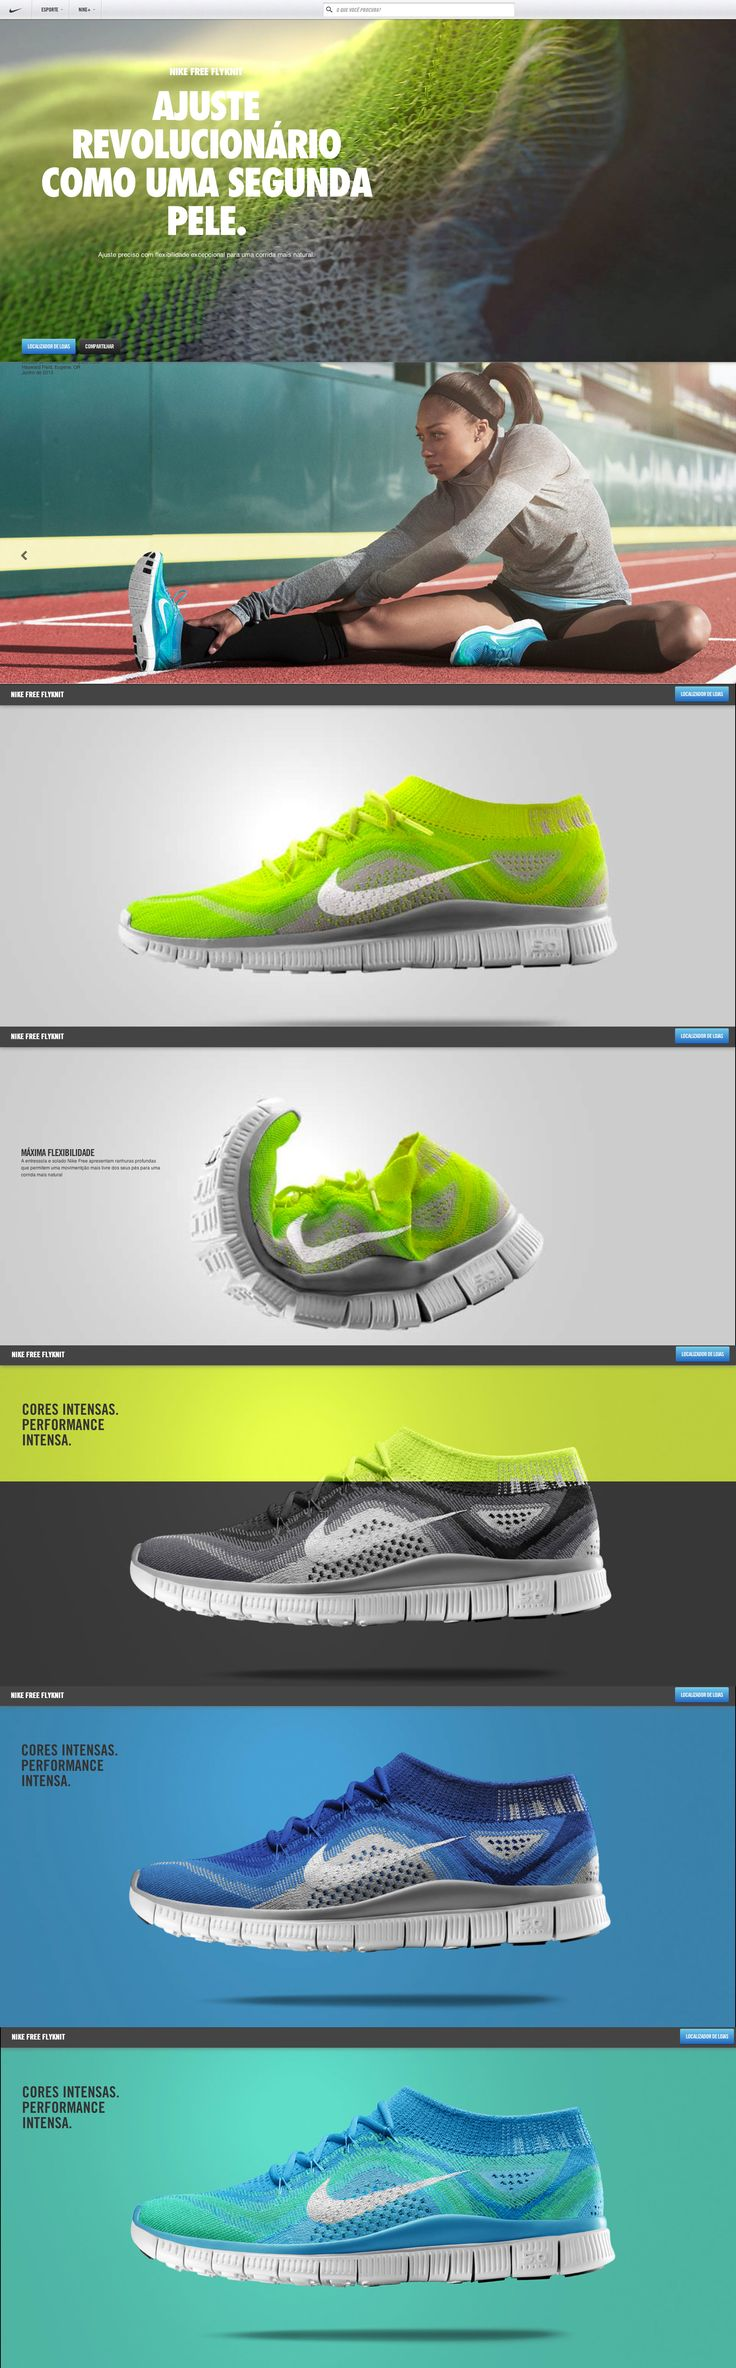 nike free flyknit // Hi Friends, look what I just found on #web #design! Make sure to follow us @moirestudiosjkt to see more pins like this | Moire Studios is a thriving website and graphic design studio based in Jakarta, Indonesia.